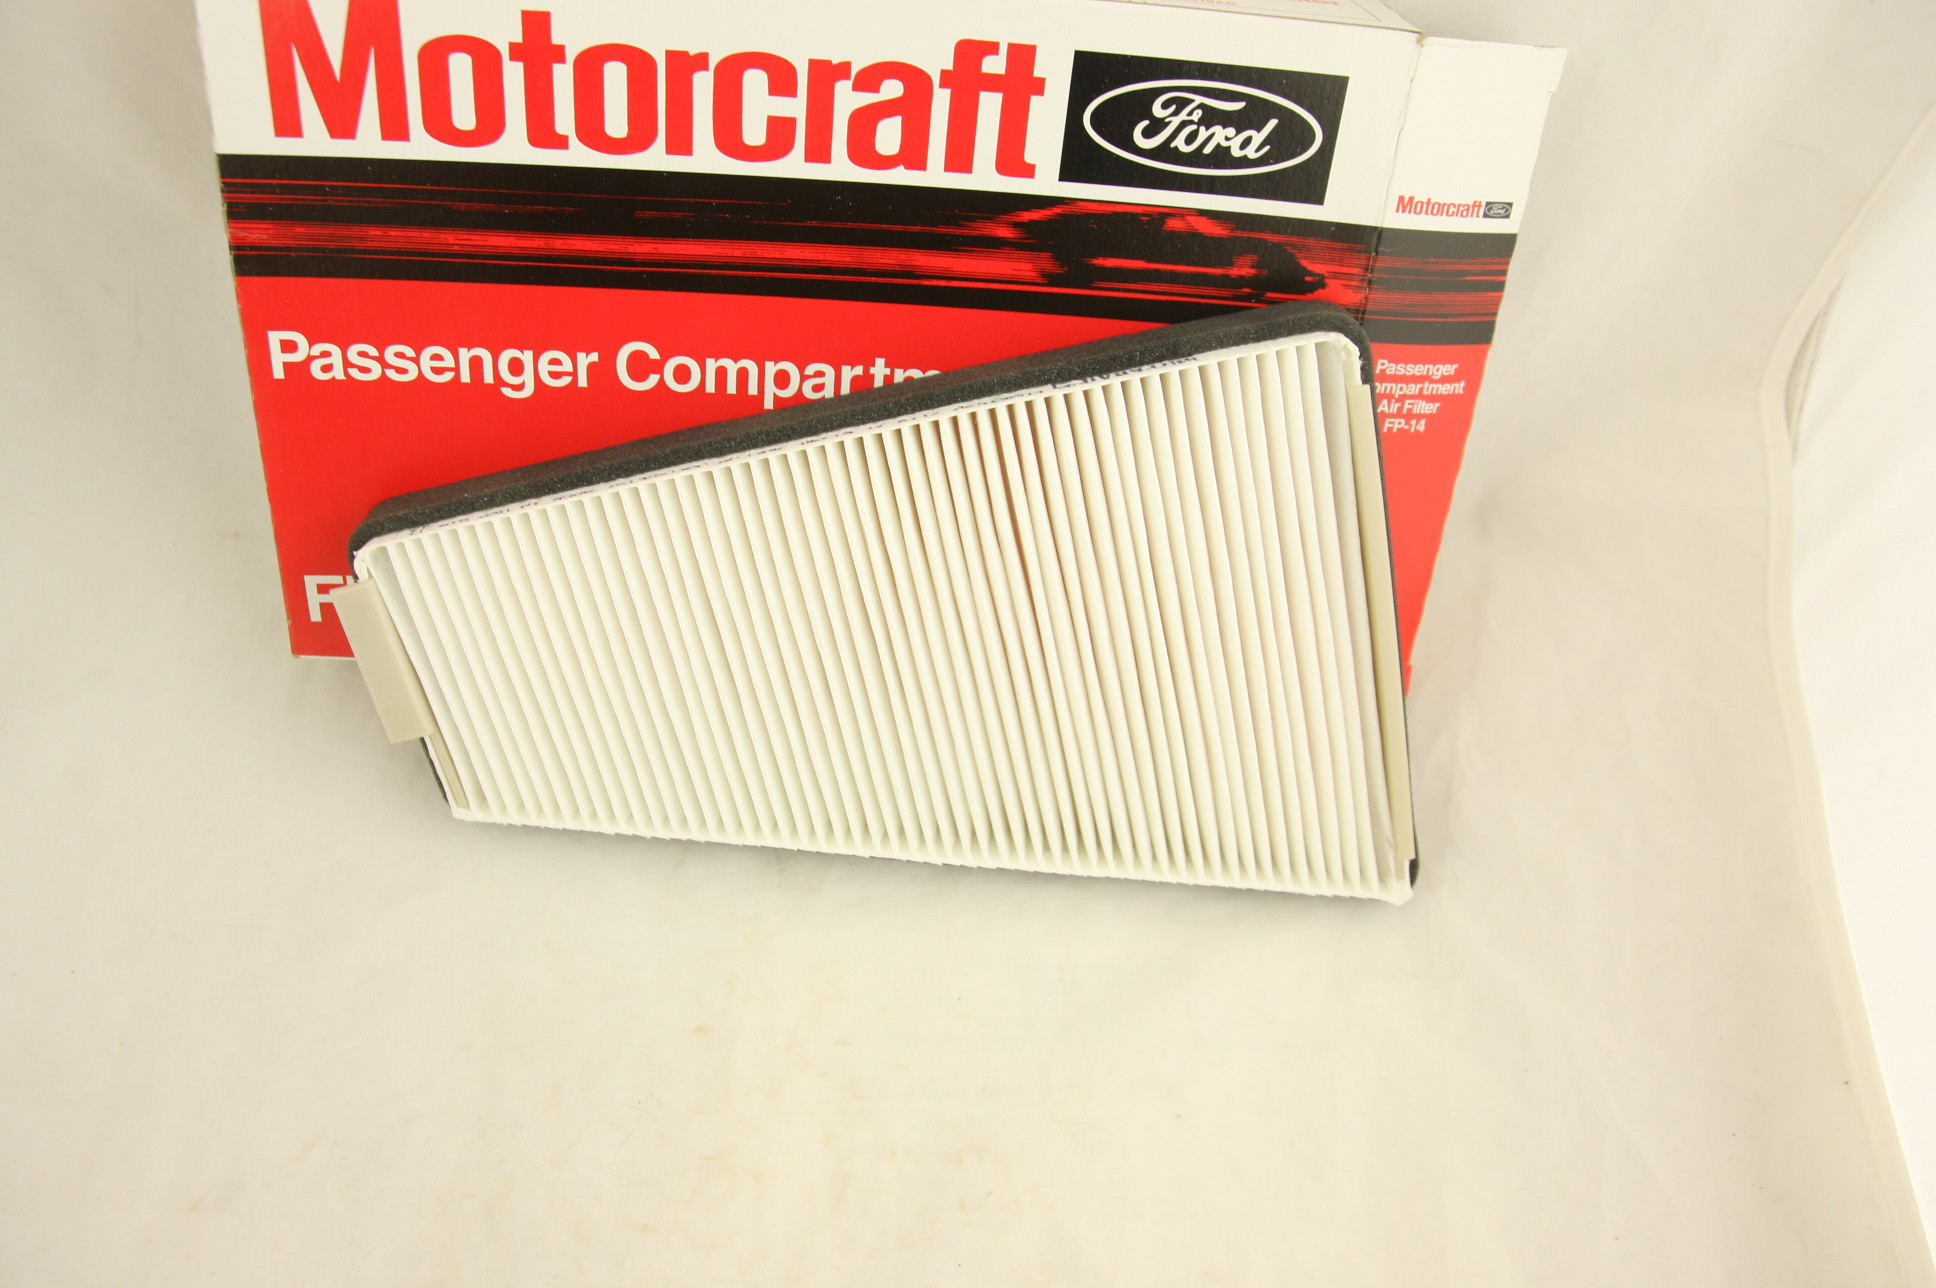 *** New OEM Motorcraft FP14 Ford F7DZ19N619AB Pollen Cabin Filter Free Shipping - image 6